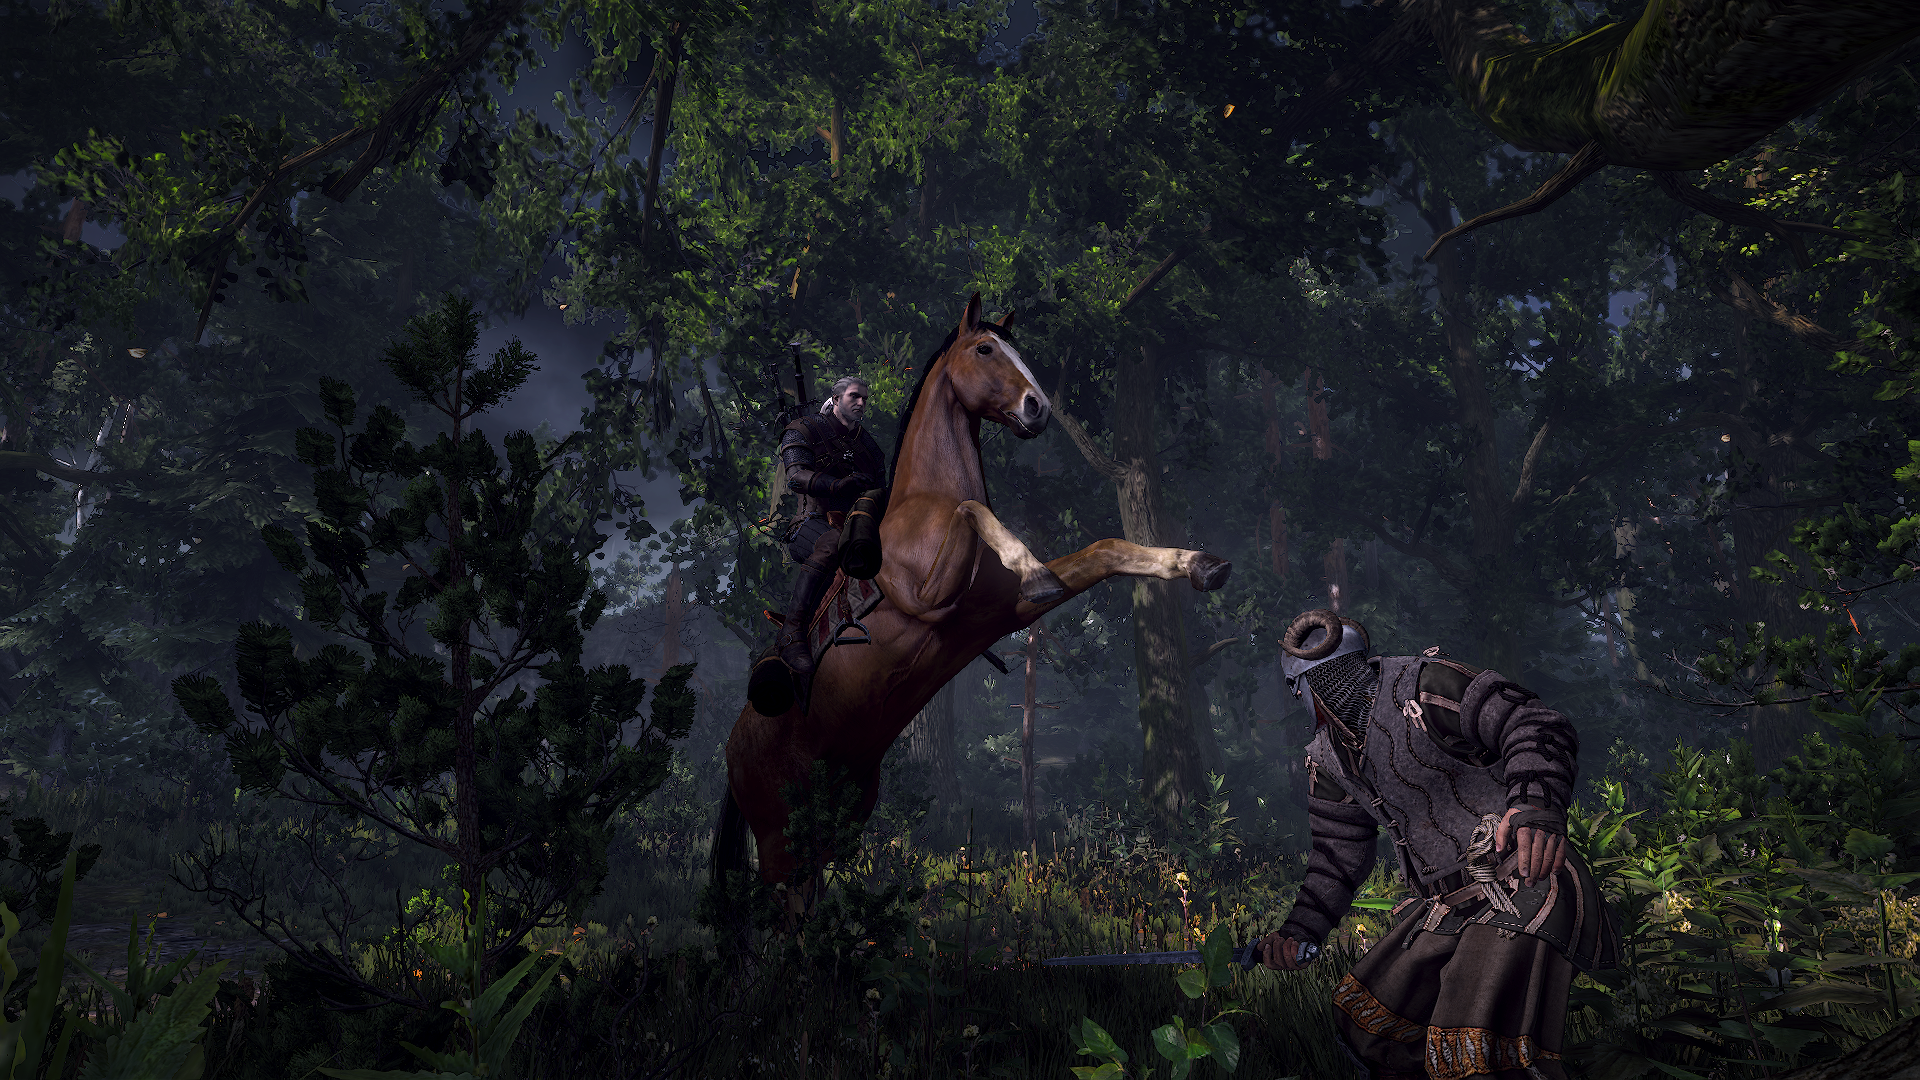 Screenshots The Witcher 3 Wiki Guide Ign The Witcher 3 The Witcher The Witcher Wild Hunt